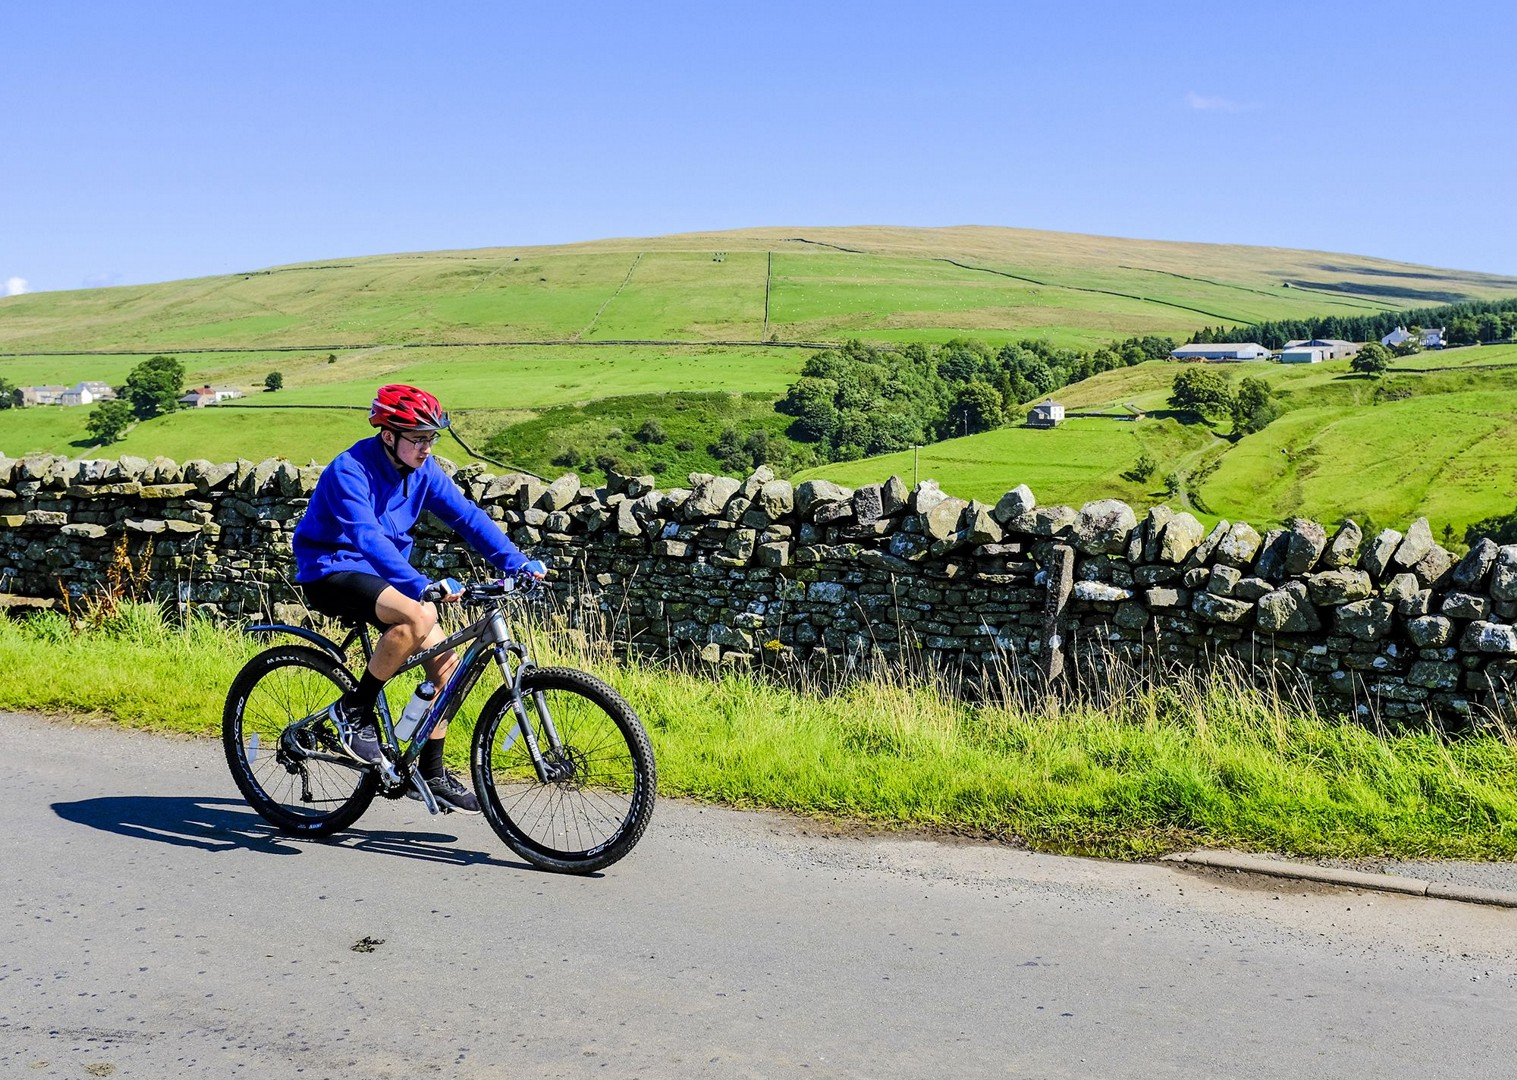 traditional-british-fields-meet-friends-group-trip-cycling-holiday.jpg - UK - C2C - Coast to Coast - Supported Leisure Cycling Holiday - Family Cycling